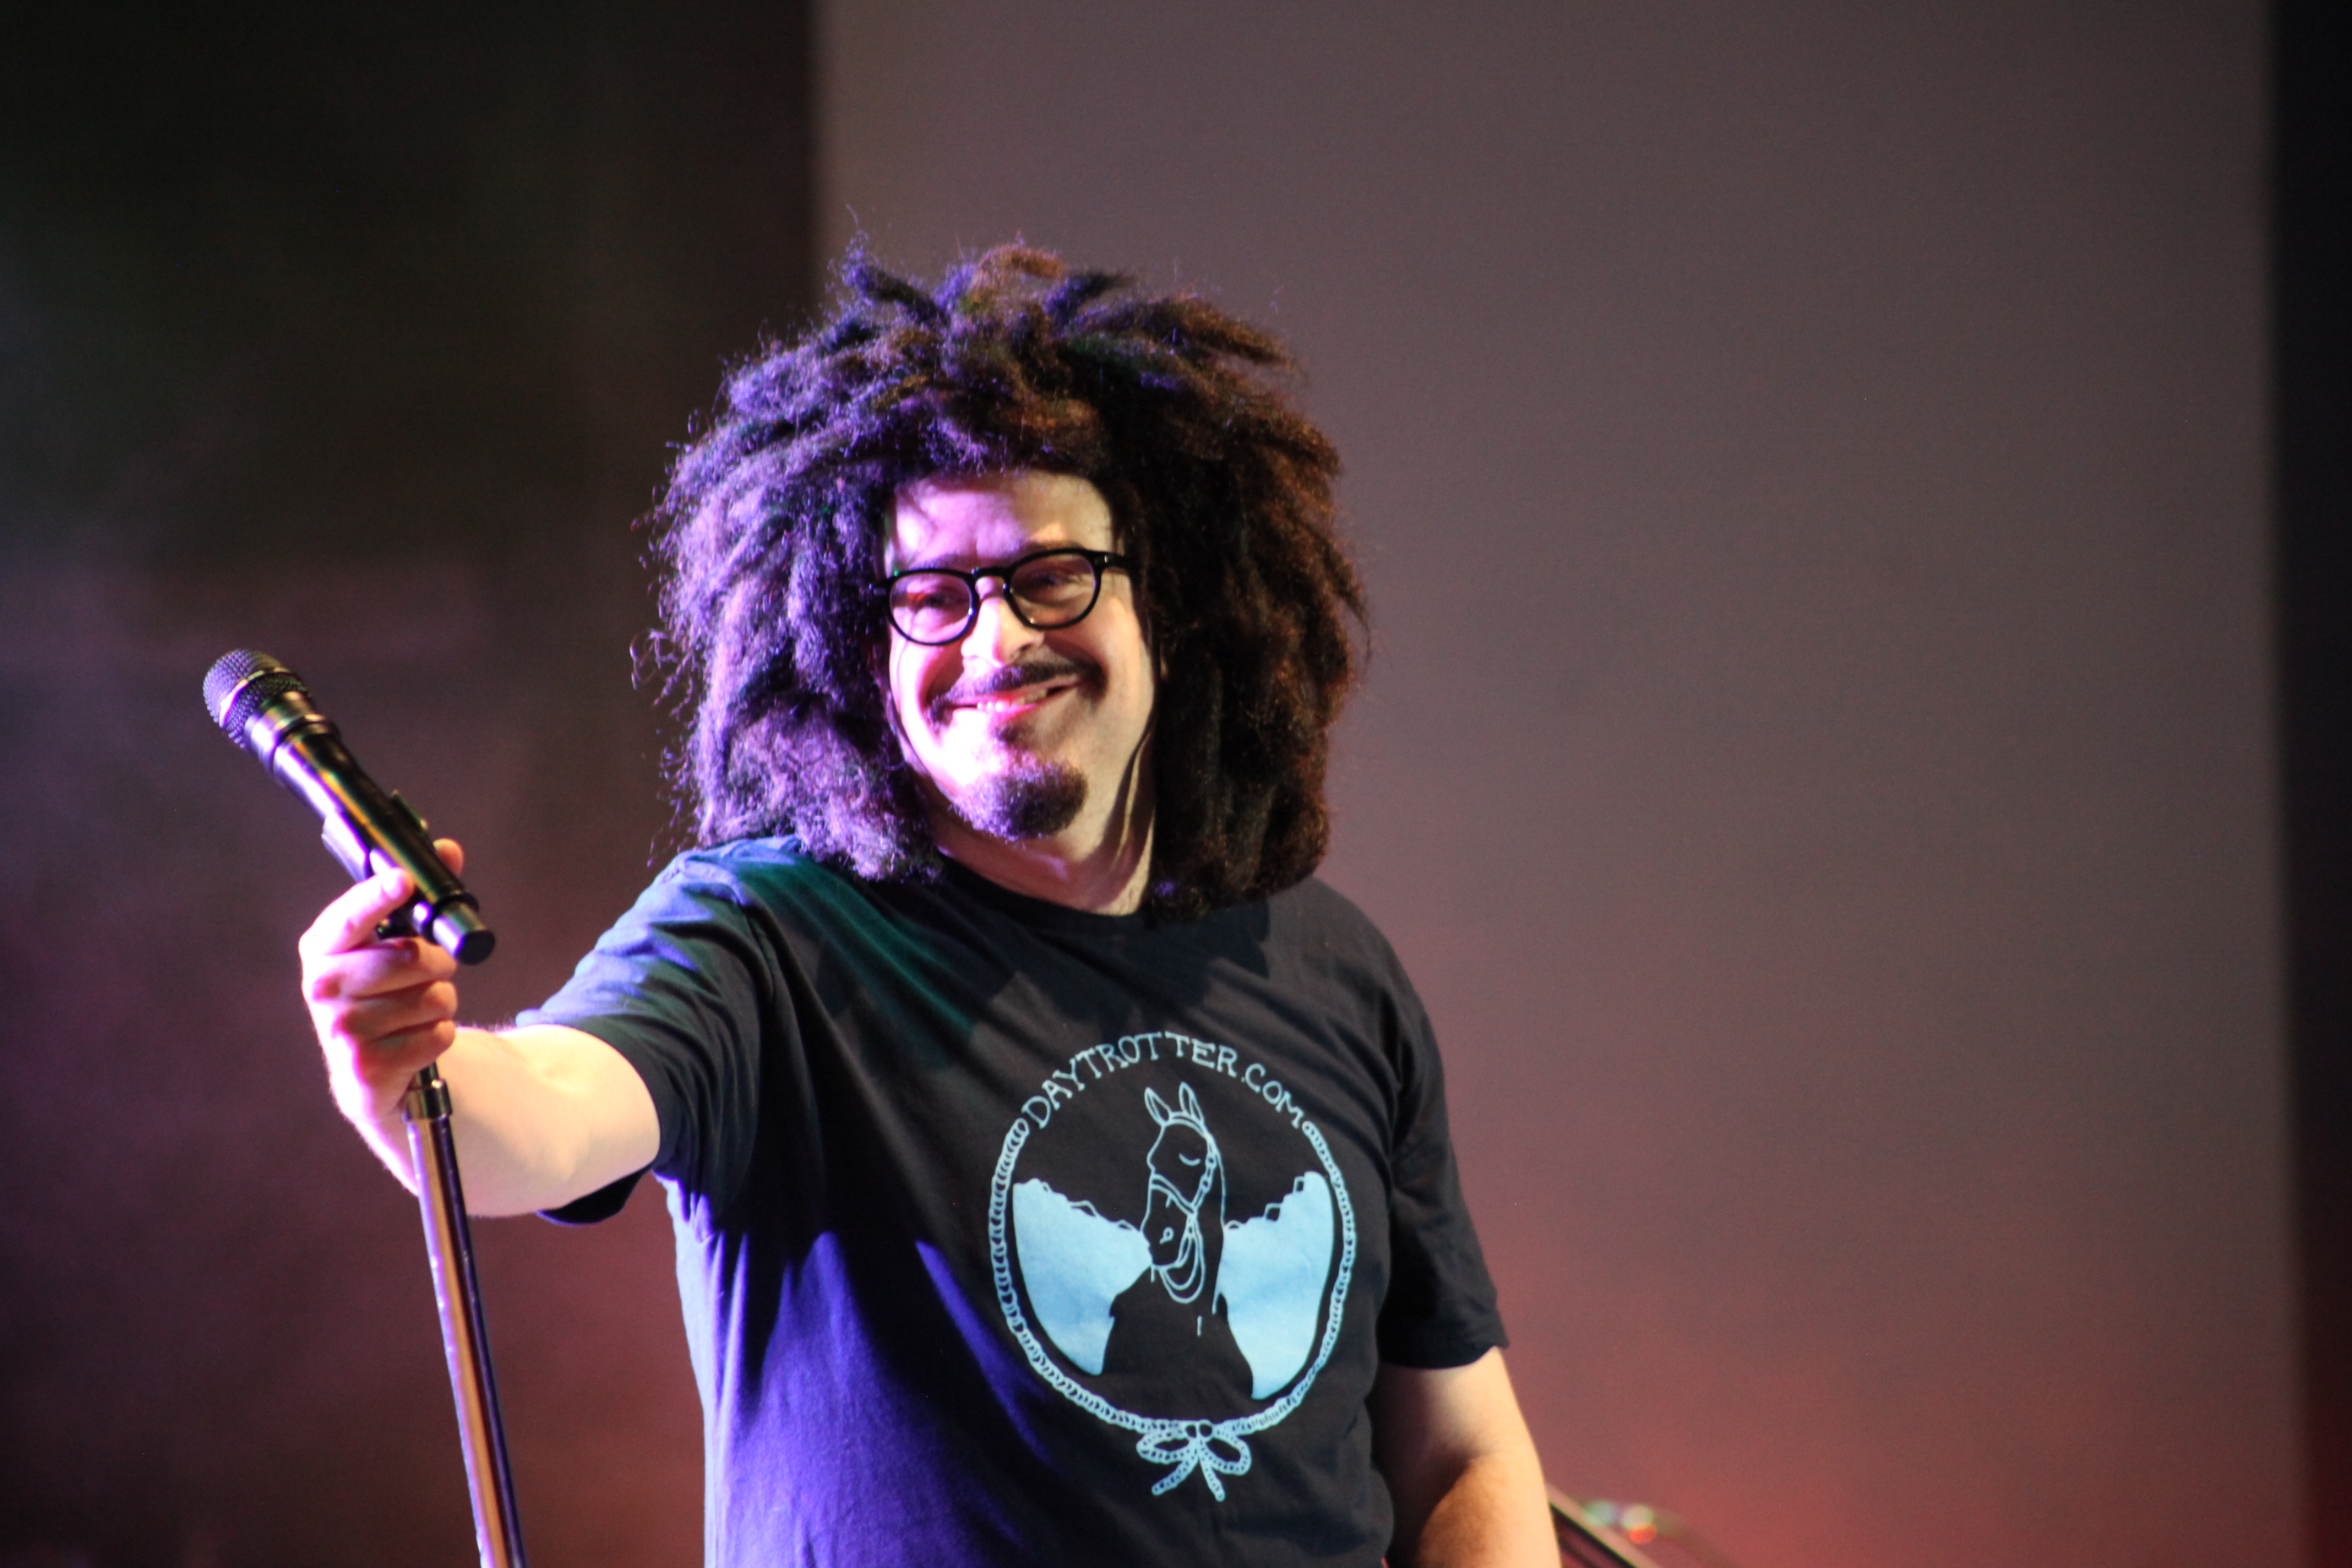 Adam Duritz, lead singer of the Counting Crows, stops to smile at the crowd on Saturday, June 14 at the St. Augustine Amphitheatre. The band played to a nearly sold out crowd, with Toad the Wet Sprocket opening the show. Photos by RENEE UNSWORTH